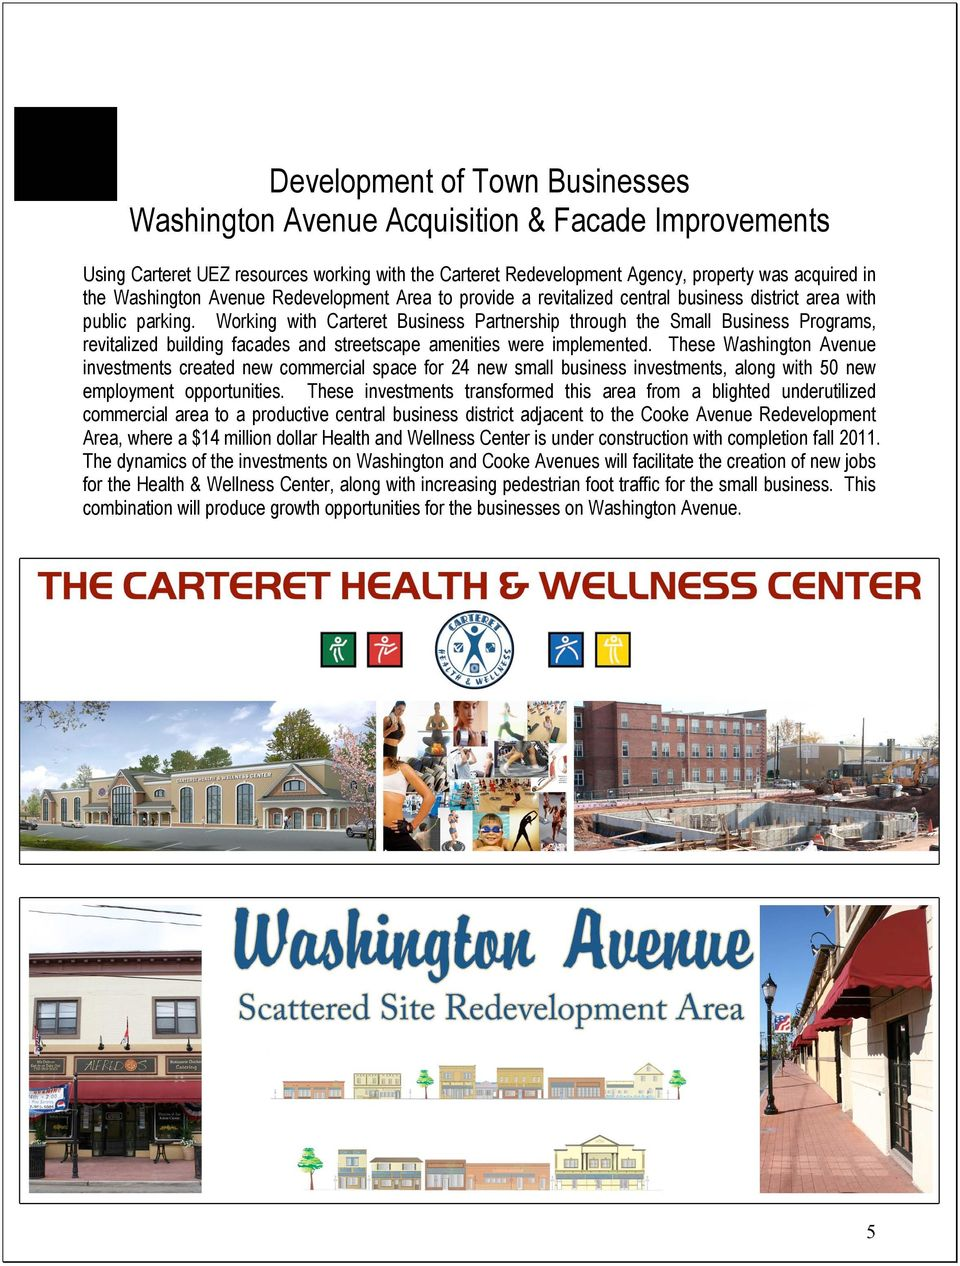 Working with Carteret Business Partnership through the Small Business Programs, revitalized building facades and streetscape amenities were implemented.